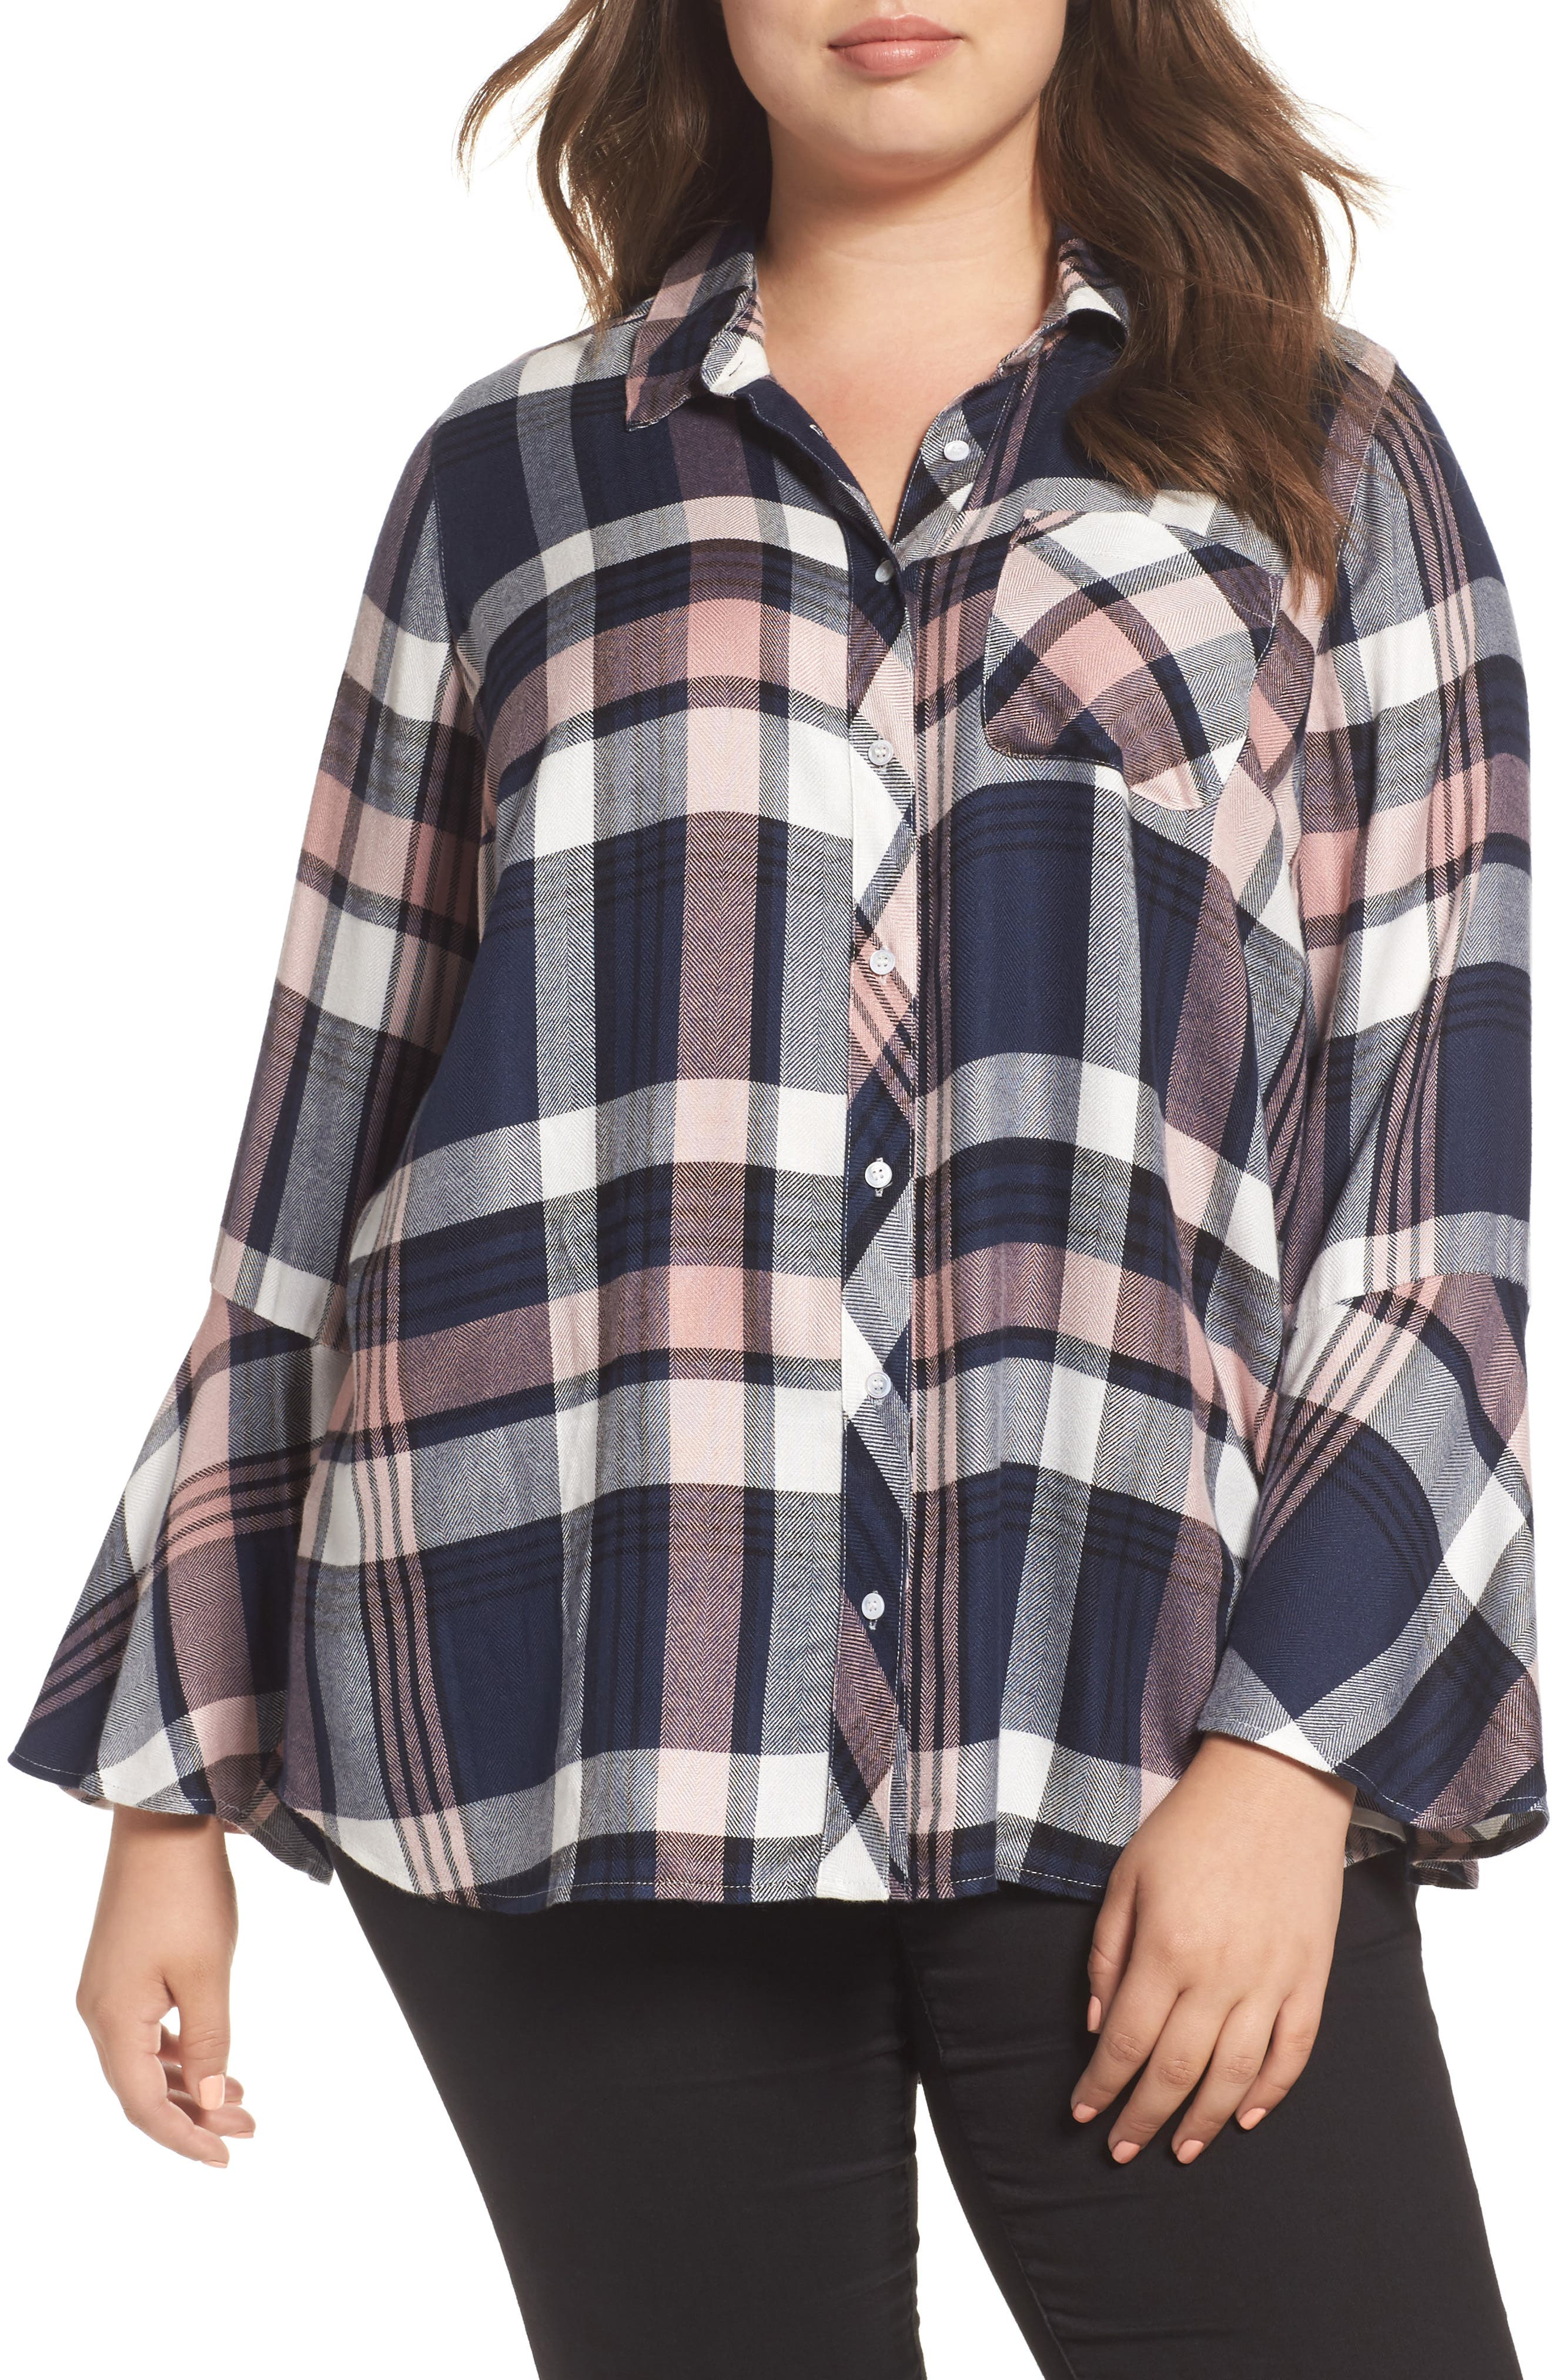 Alternate Image 1 Selected - Two by Vince Camuto Plaid Bell Sleeve Shirt (Plus Size)